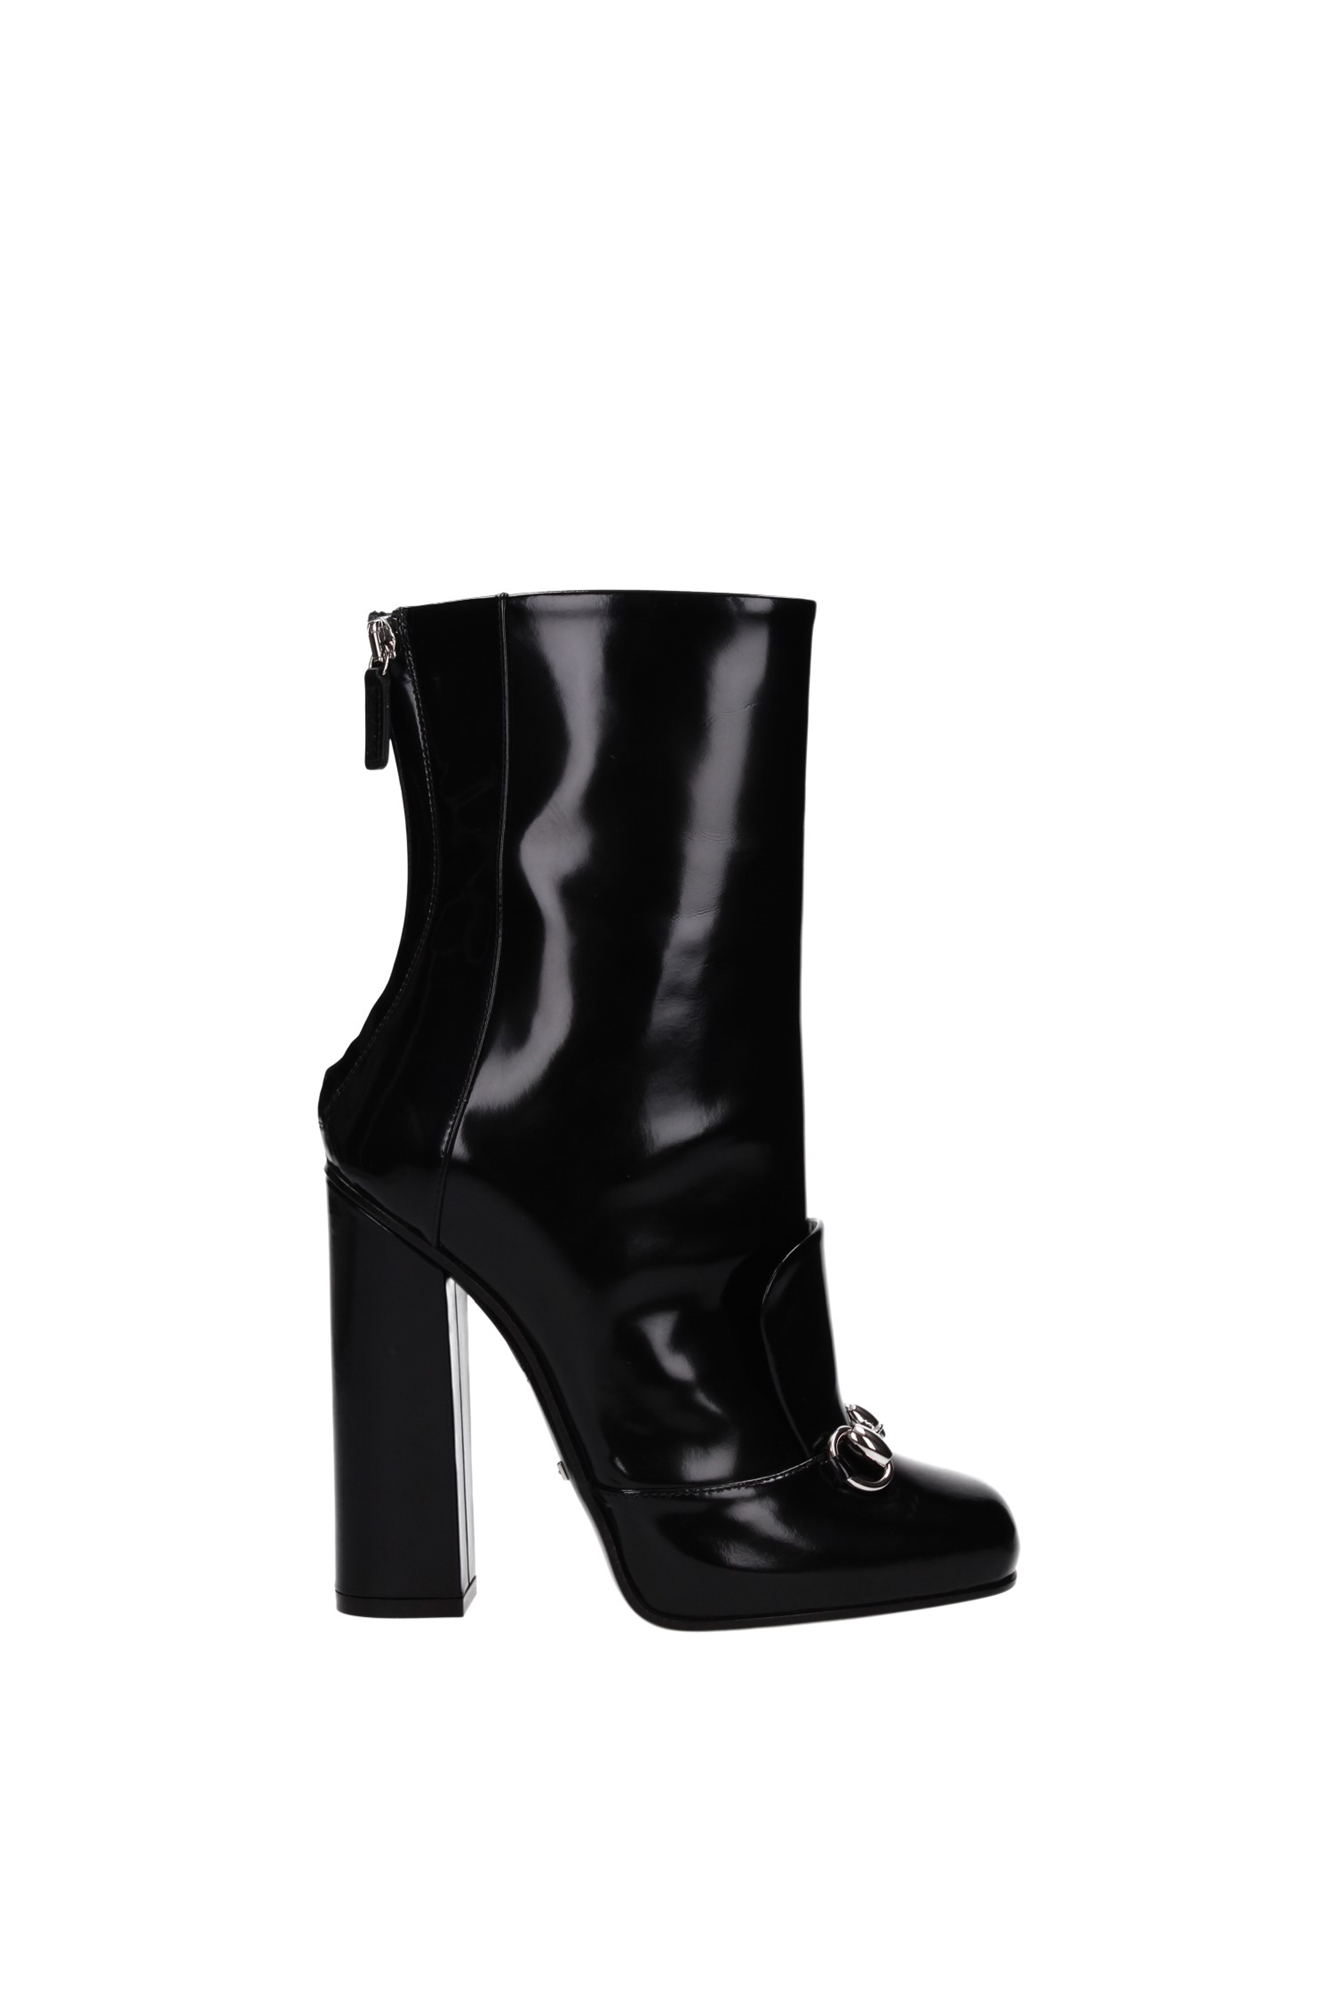 Ankle Boots Gucci Women Leather Black 363803CLG001000   eBay